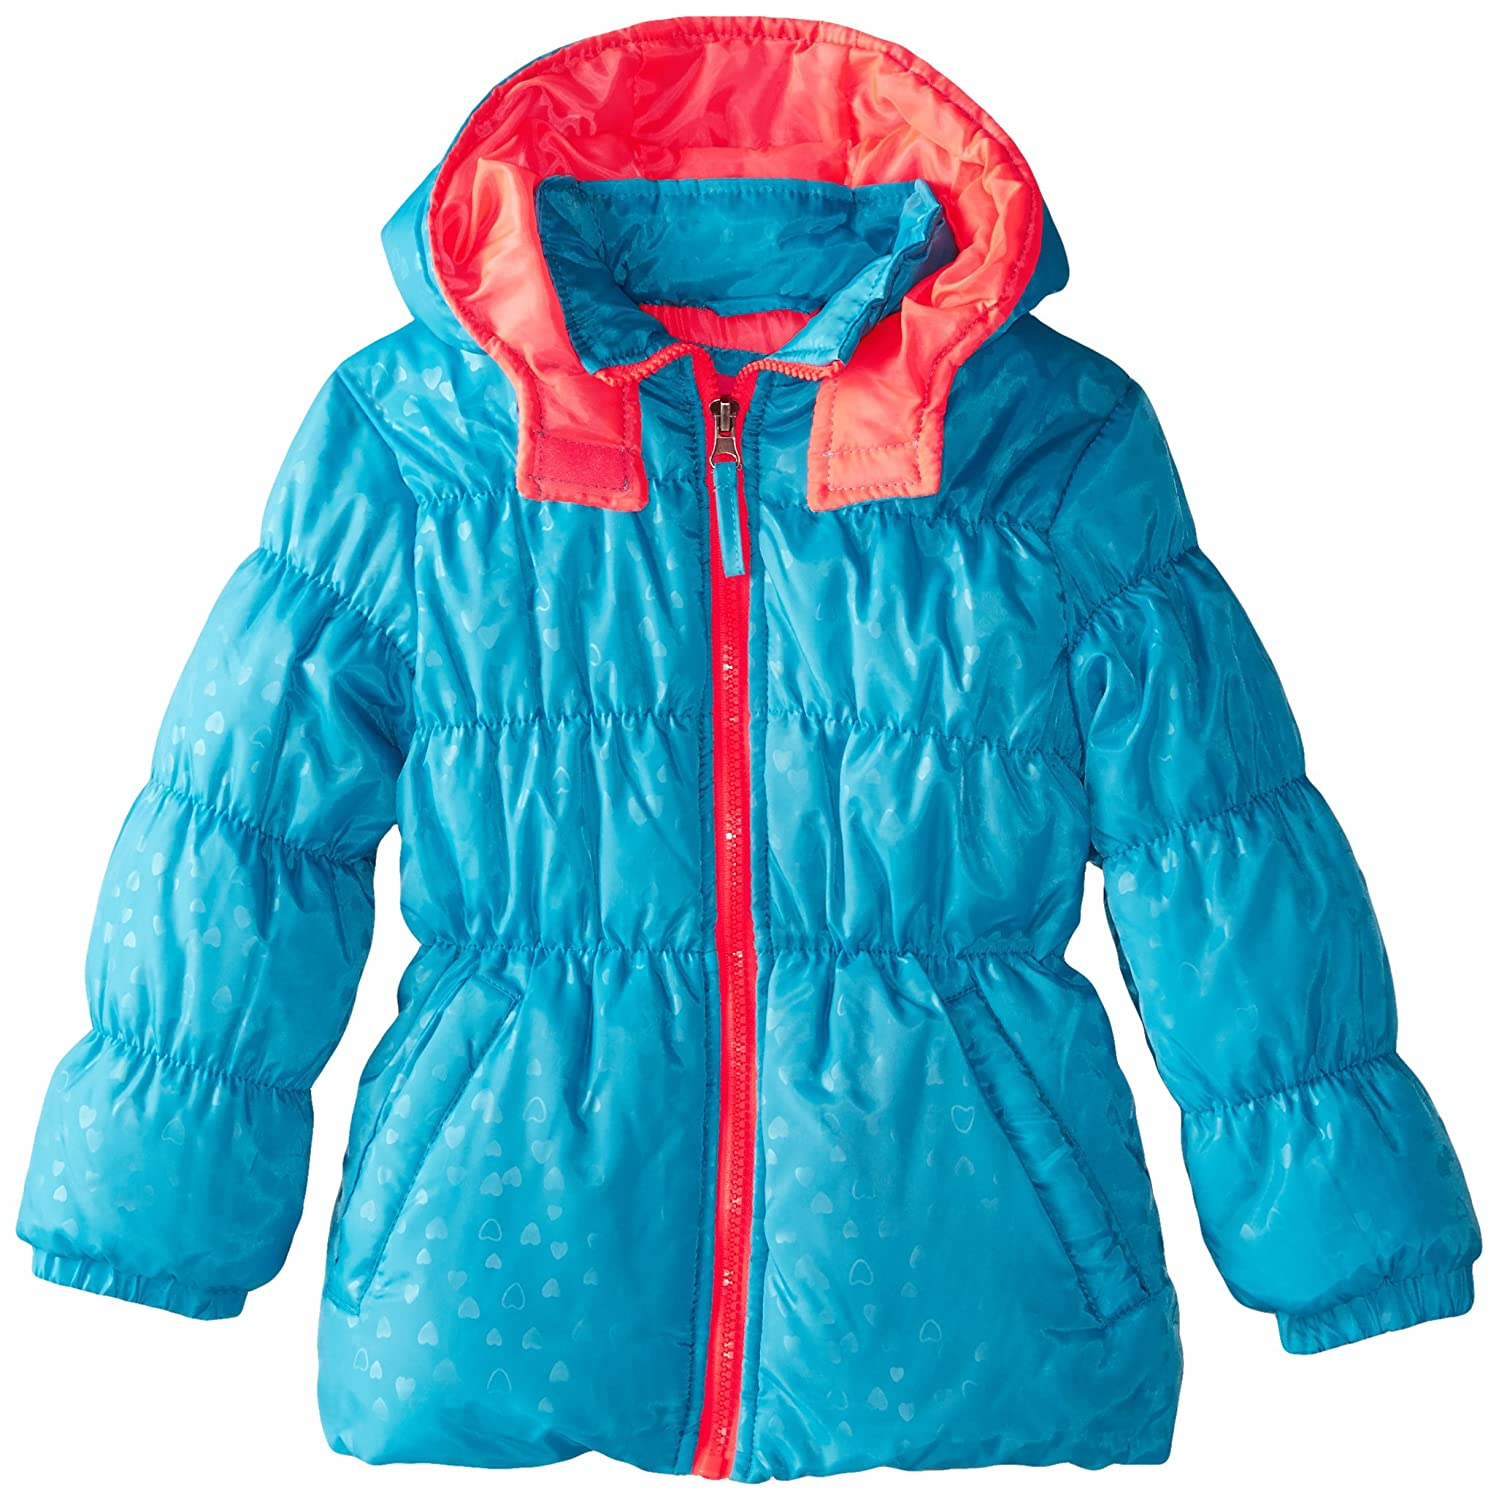 Pink Platinum Girls' Heart Stamp Puffer Jacket Pink Platinum Girls 2-6x PP74156-NVY